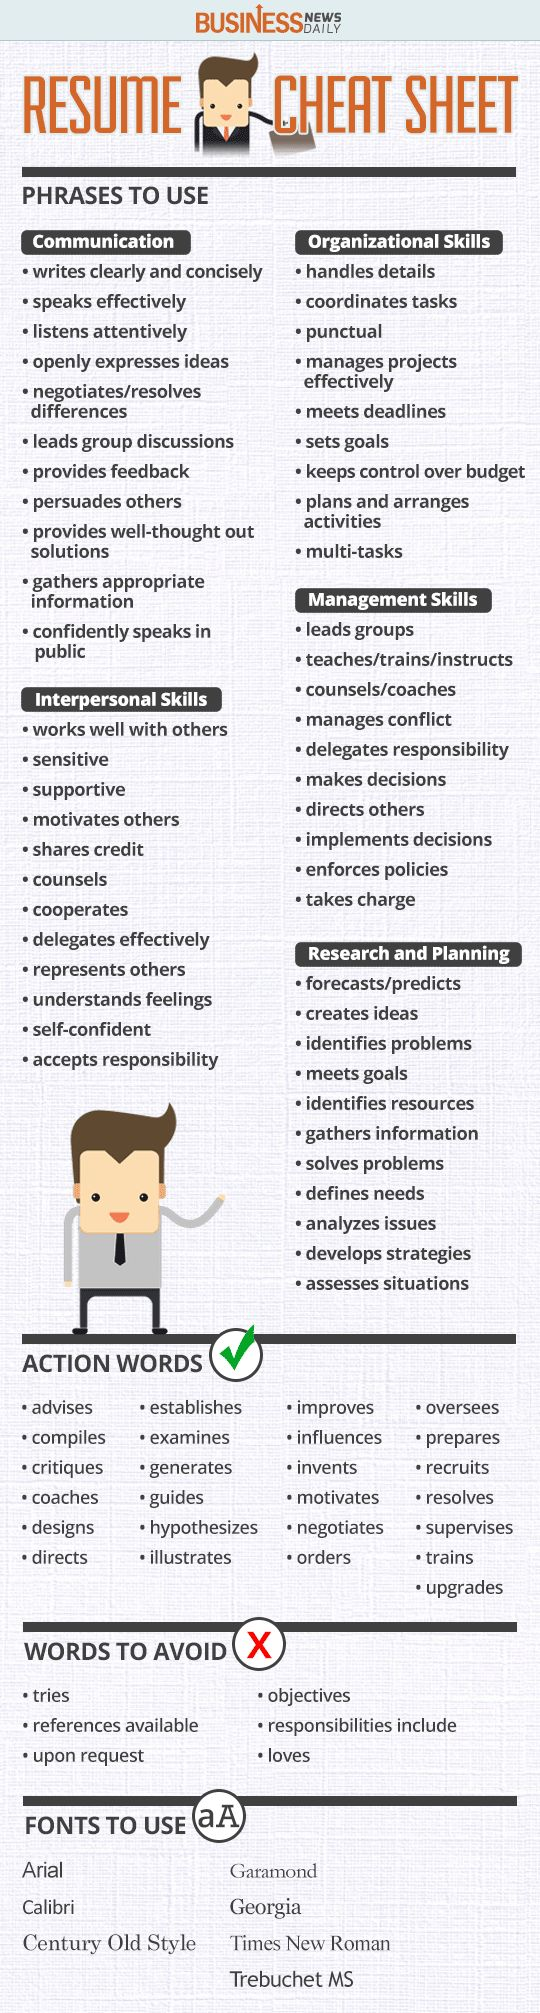 Opposenewapstandardsus  Unique  Ideas About Resume On Pinterest  Cv Format Resume Cv And  With Remarkable Resume Cheat Sheet Infographic Andrews Almost Done With A Complete Unit On Employment Which With Agreeable Linkedin Resume Search Also Computer Engineer Resume In Addition Filmmaker Resume And Resumes By Tammy As Well As Basic Computer Skills Resume Additionally Examples Of Objective For Resume From Pinterestcom With Opposenewapstandardsus  Remarkable  Ideas About Resume On Pinterest  Cv Format Resume Cv And  With Agreeable Resume Cheat Sheet Infographic Andrews Almost Done With A Complete Unit On Employment Which And Unique Linkedin Resume Search Also Computer Engineer Resume In Addition Filmmaker Resume From Pinterestcom